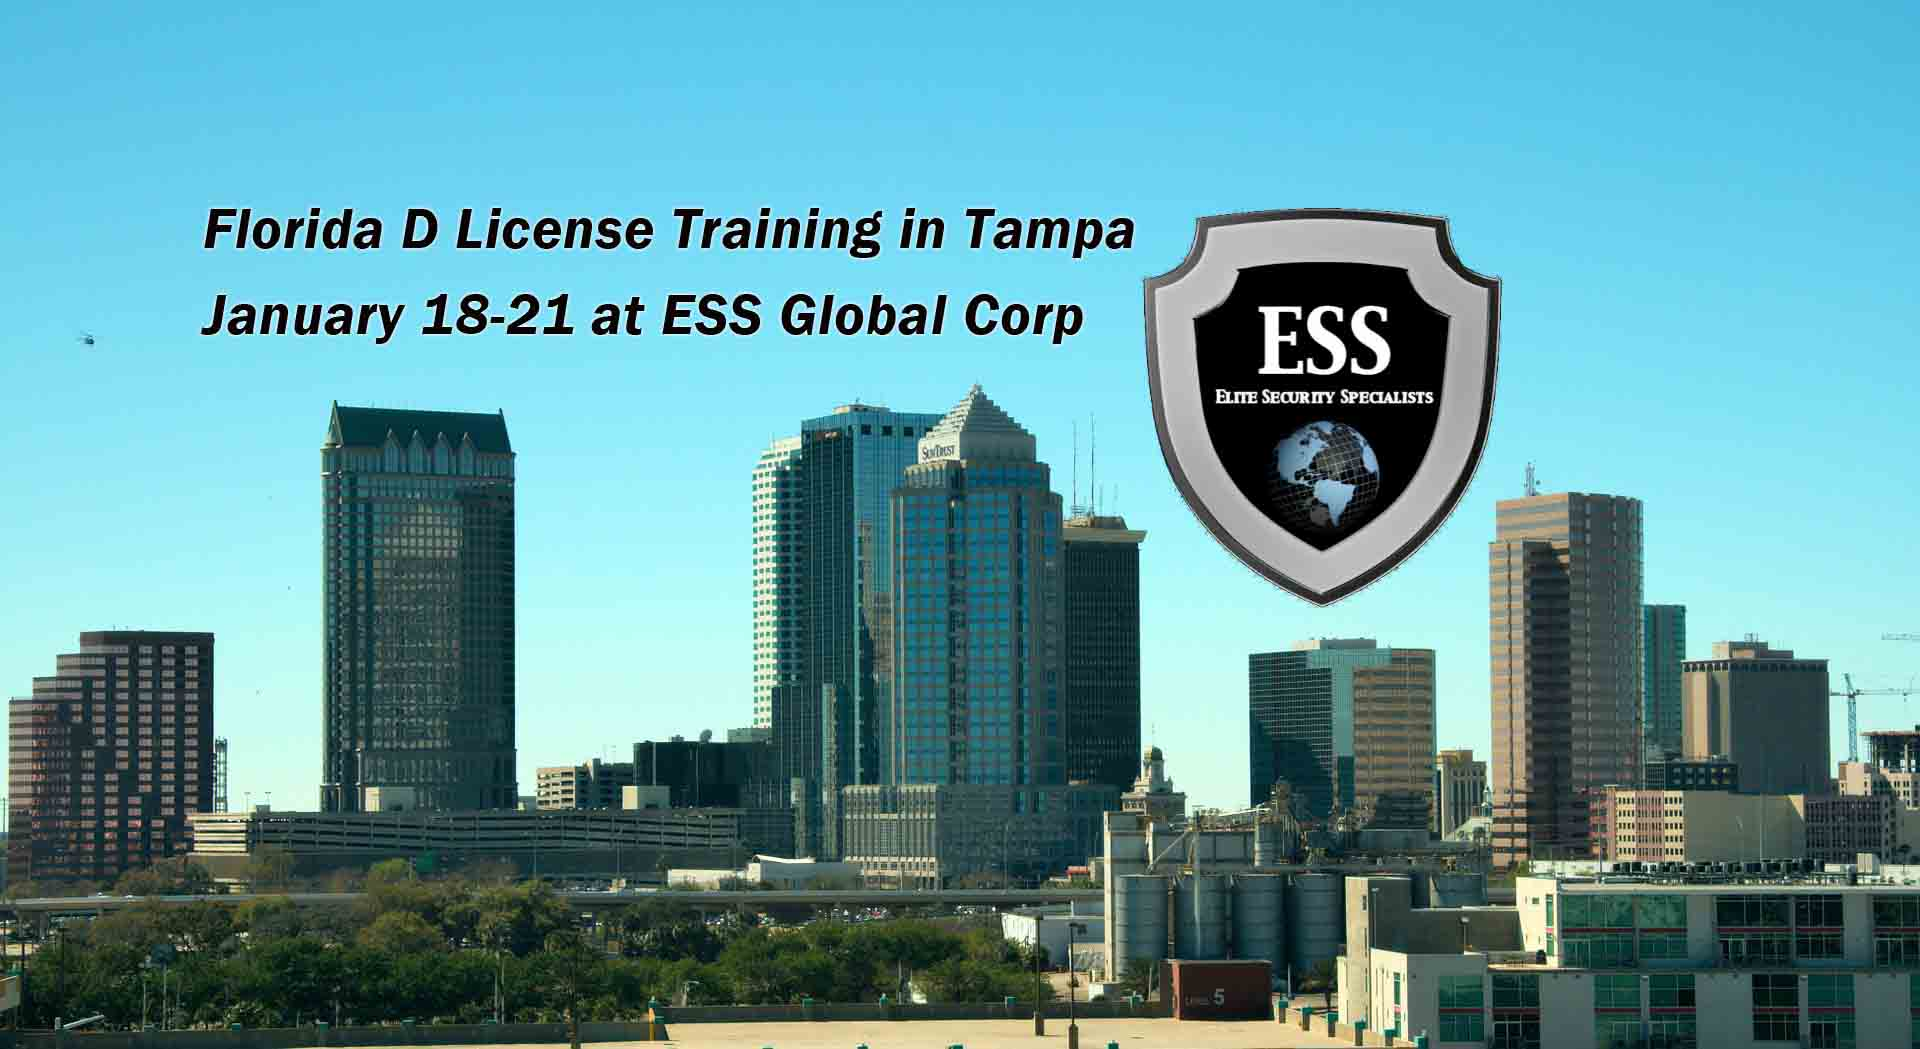 Florida D License Training in Tampa January 2019 at ESS Global Corpl